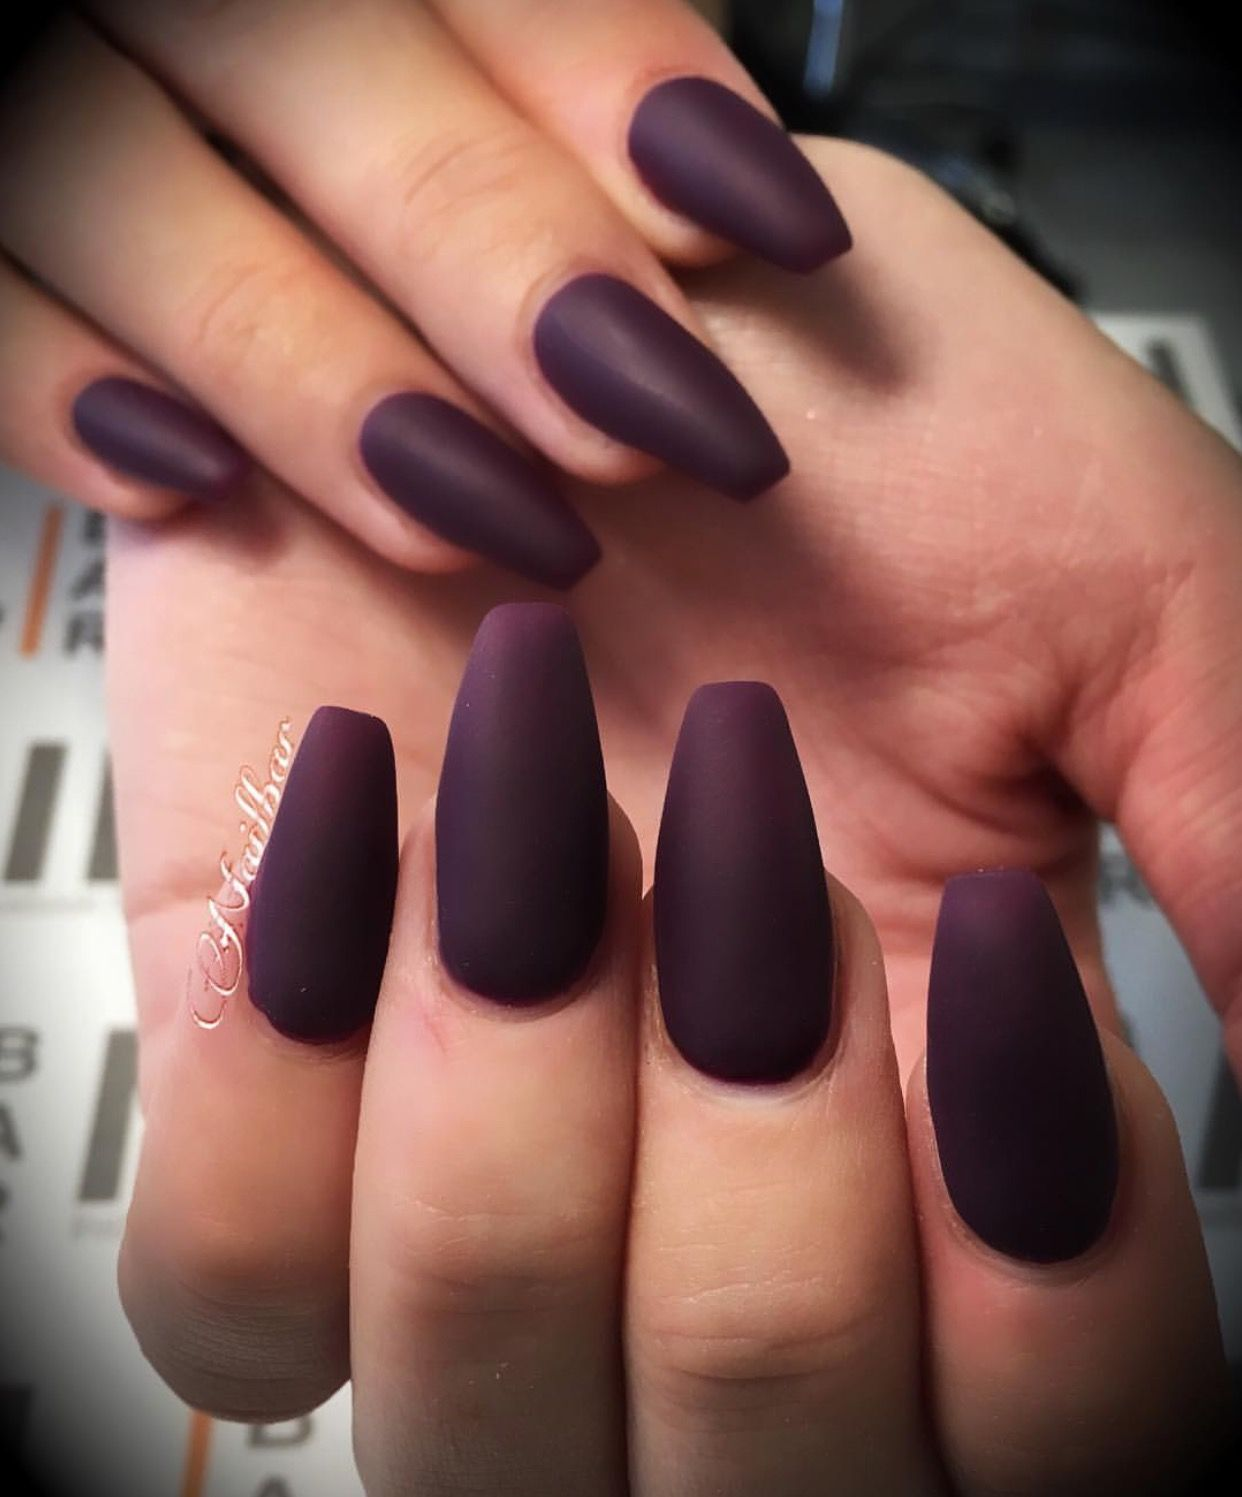 Maroon Matte Coffin Nails Obsessed Matte Maroon Nails Coffin Nails Matte Maroon Nails